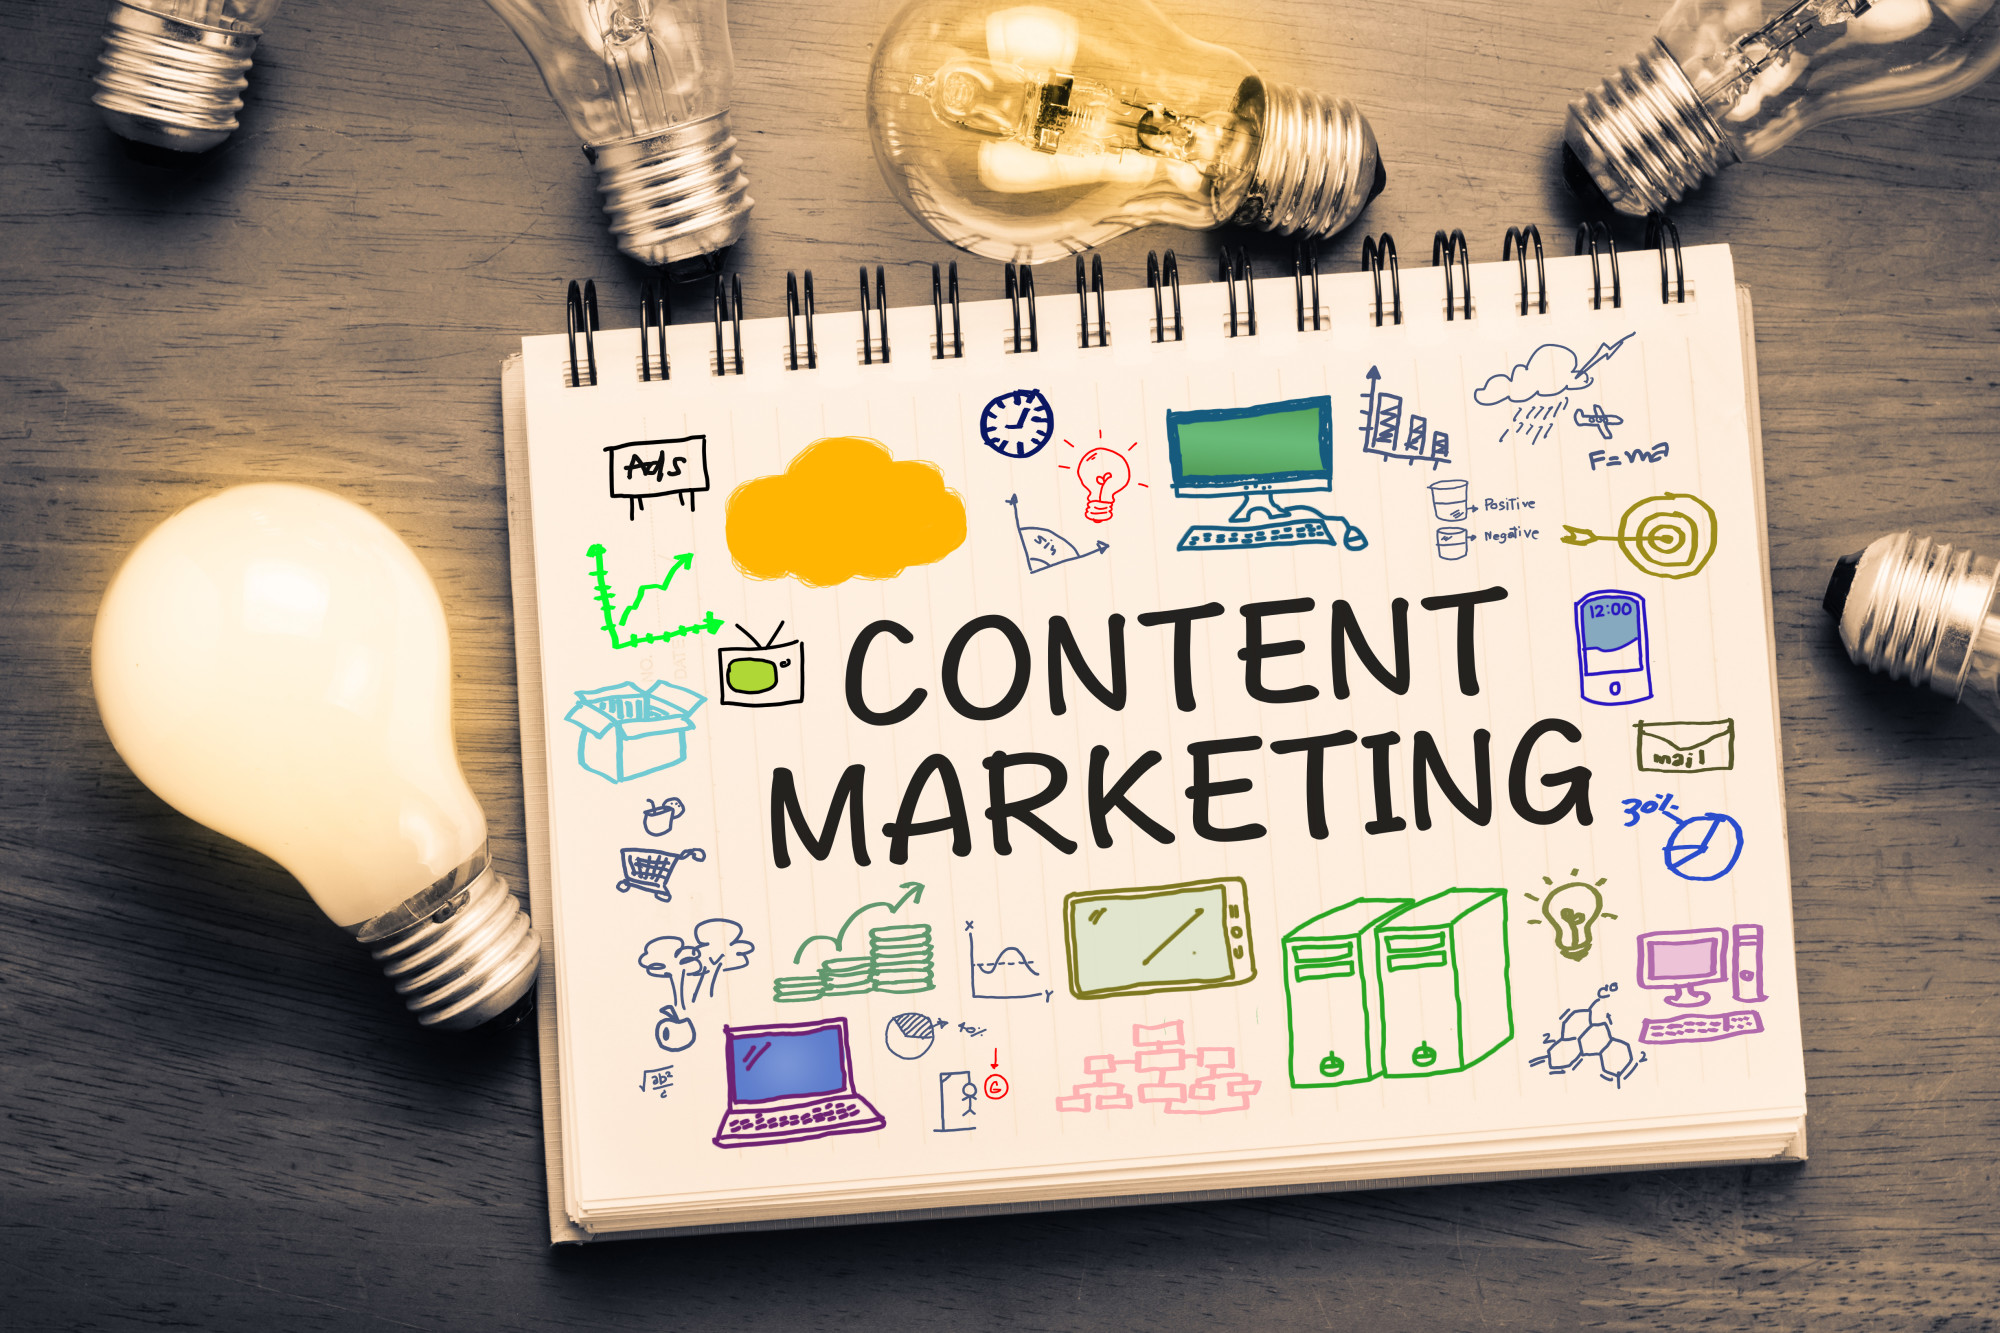 Content Reigns: 3 Content Marketing Best Practices You Need to Embrace